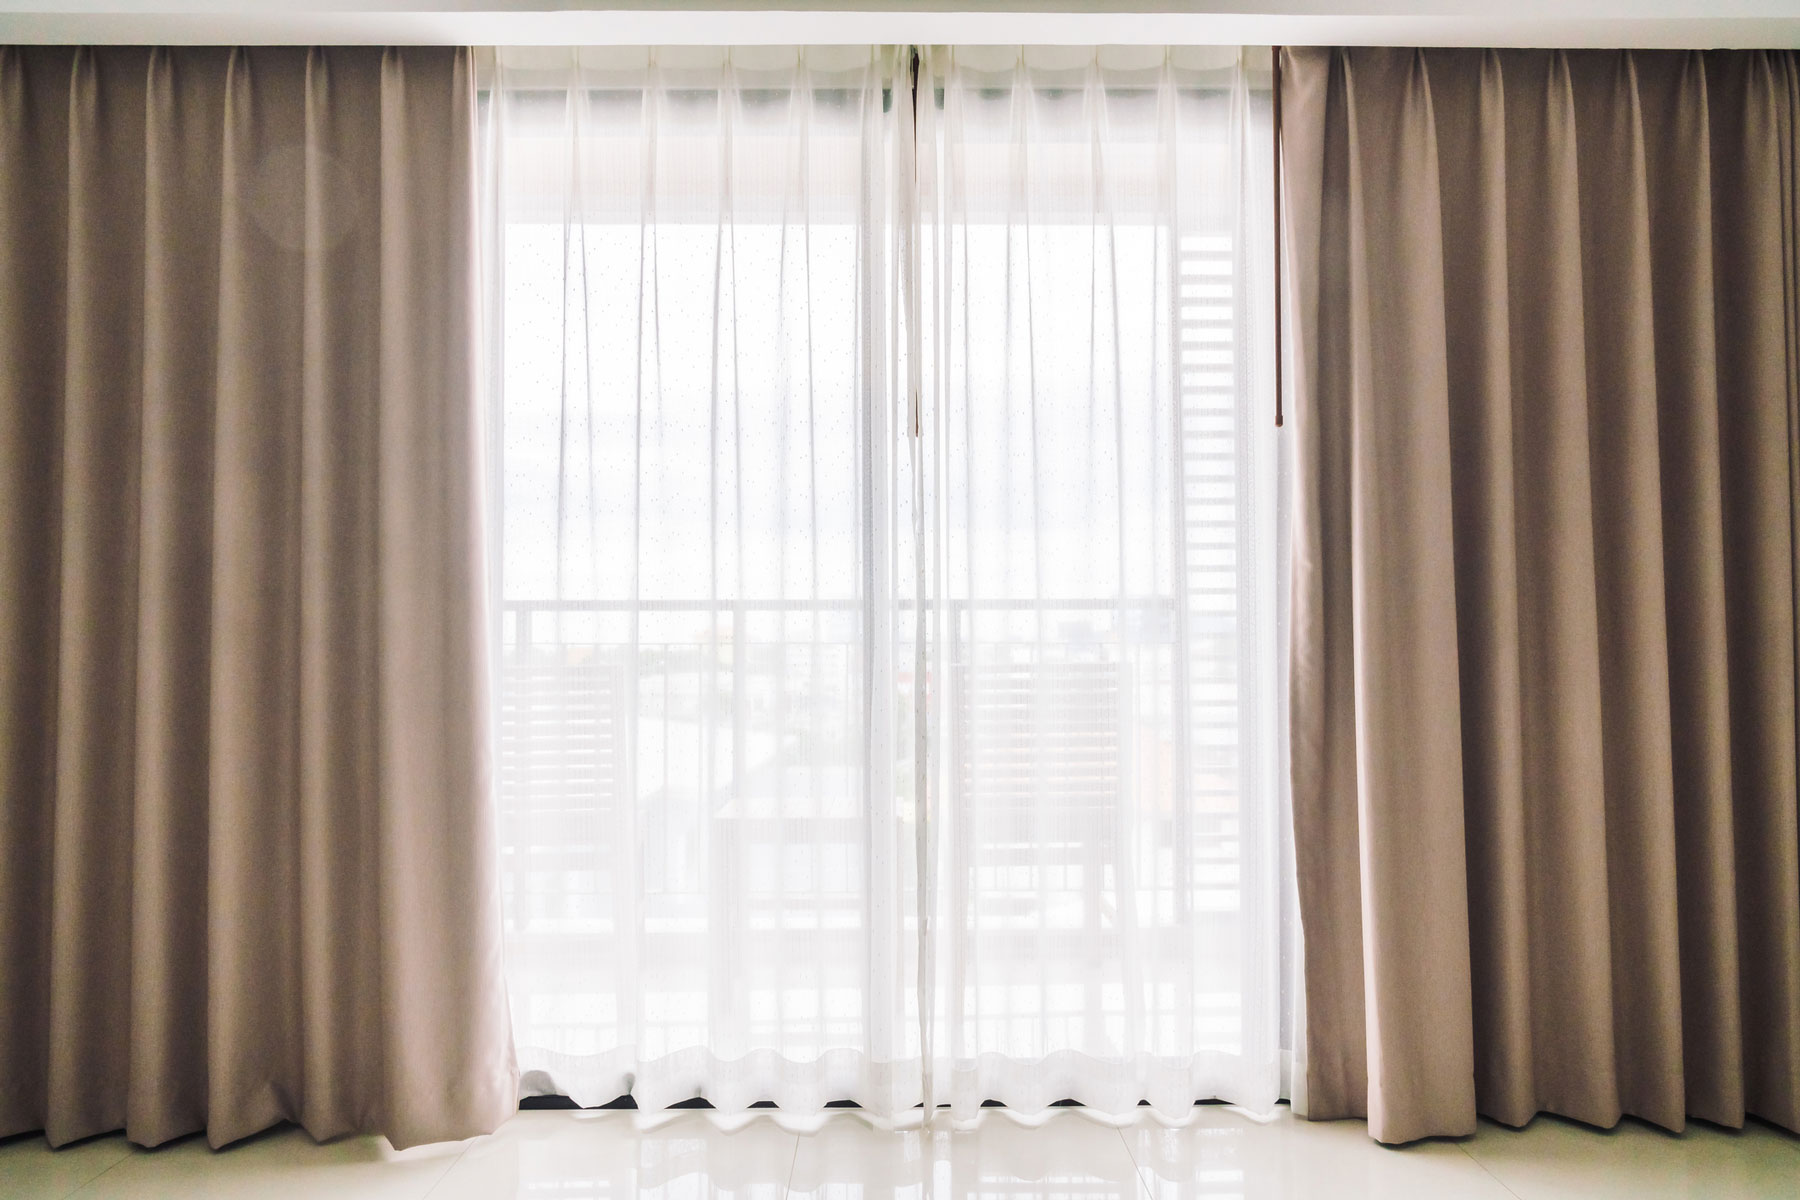 Curtains and Window Treatments Guide - How long should curtains be